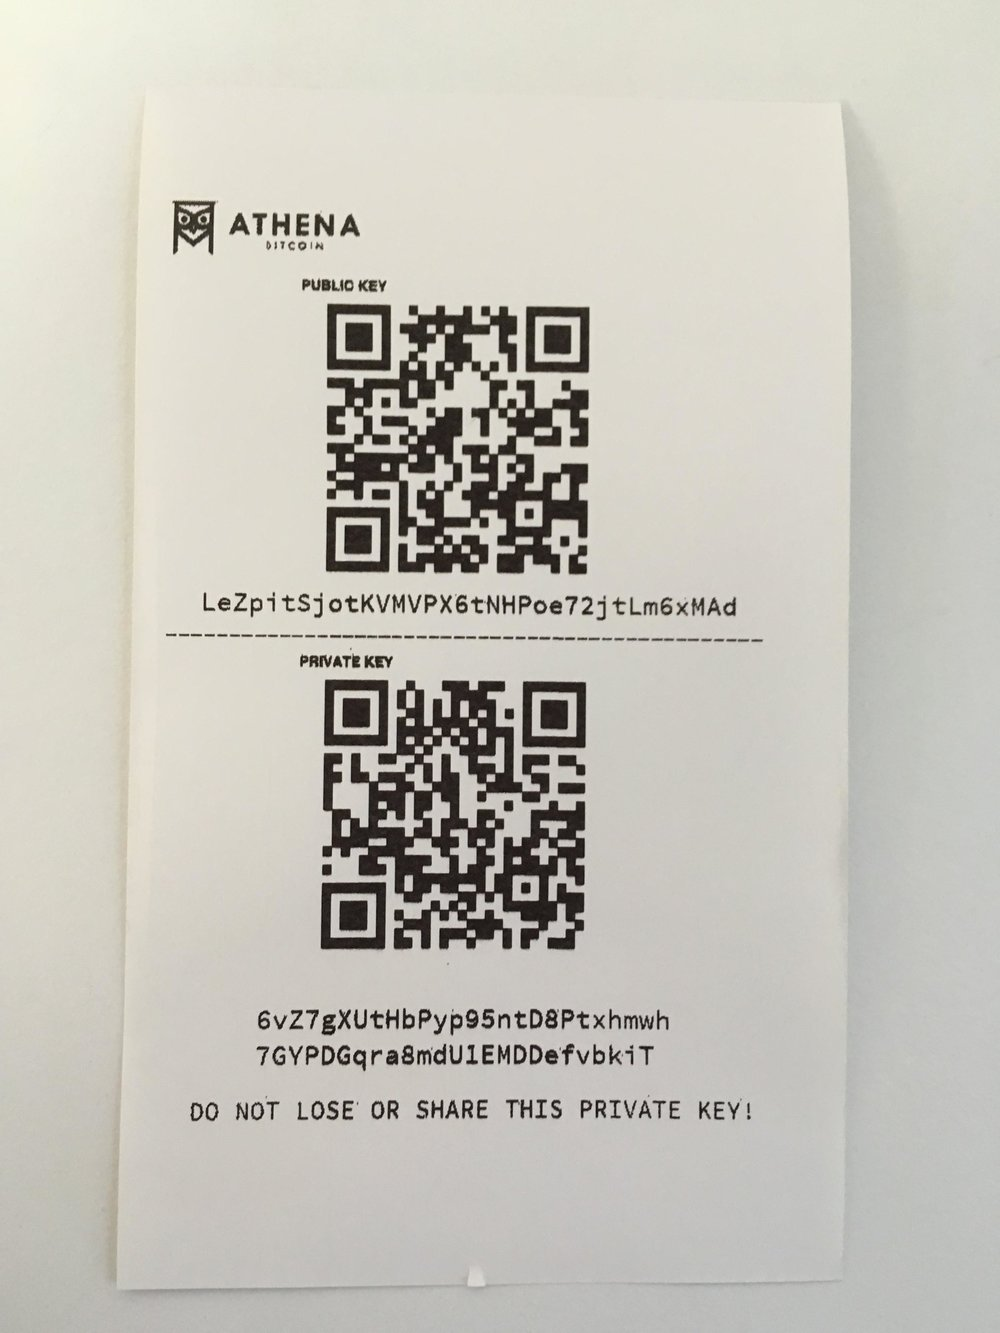 Athena  Litecoin  Paper Wallet - Note that the public address begins with  L  and the private key begins with  6